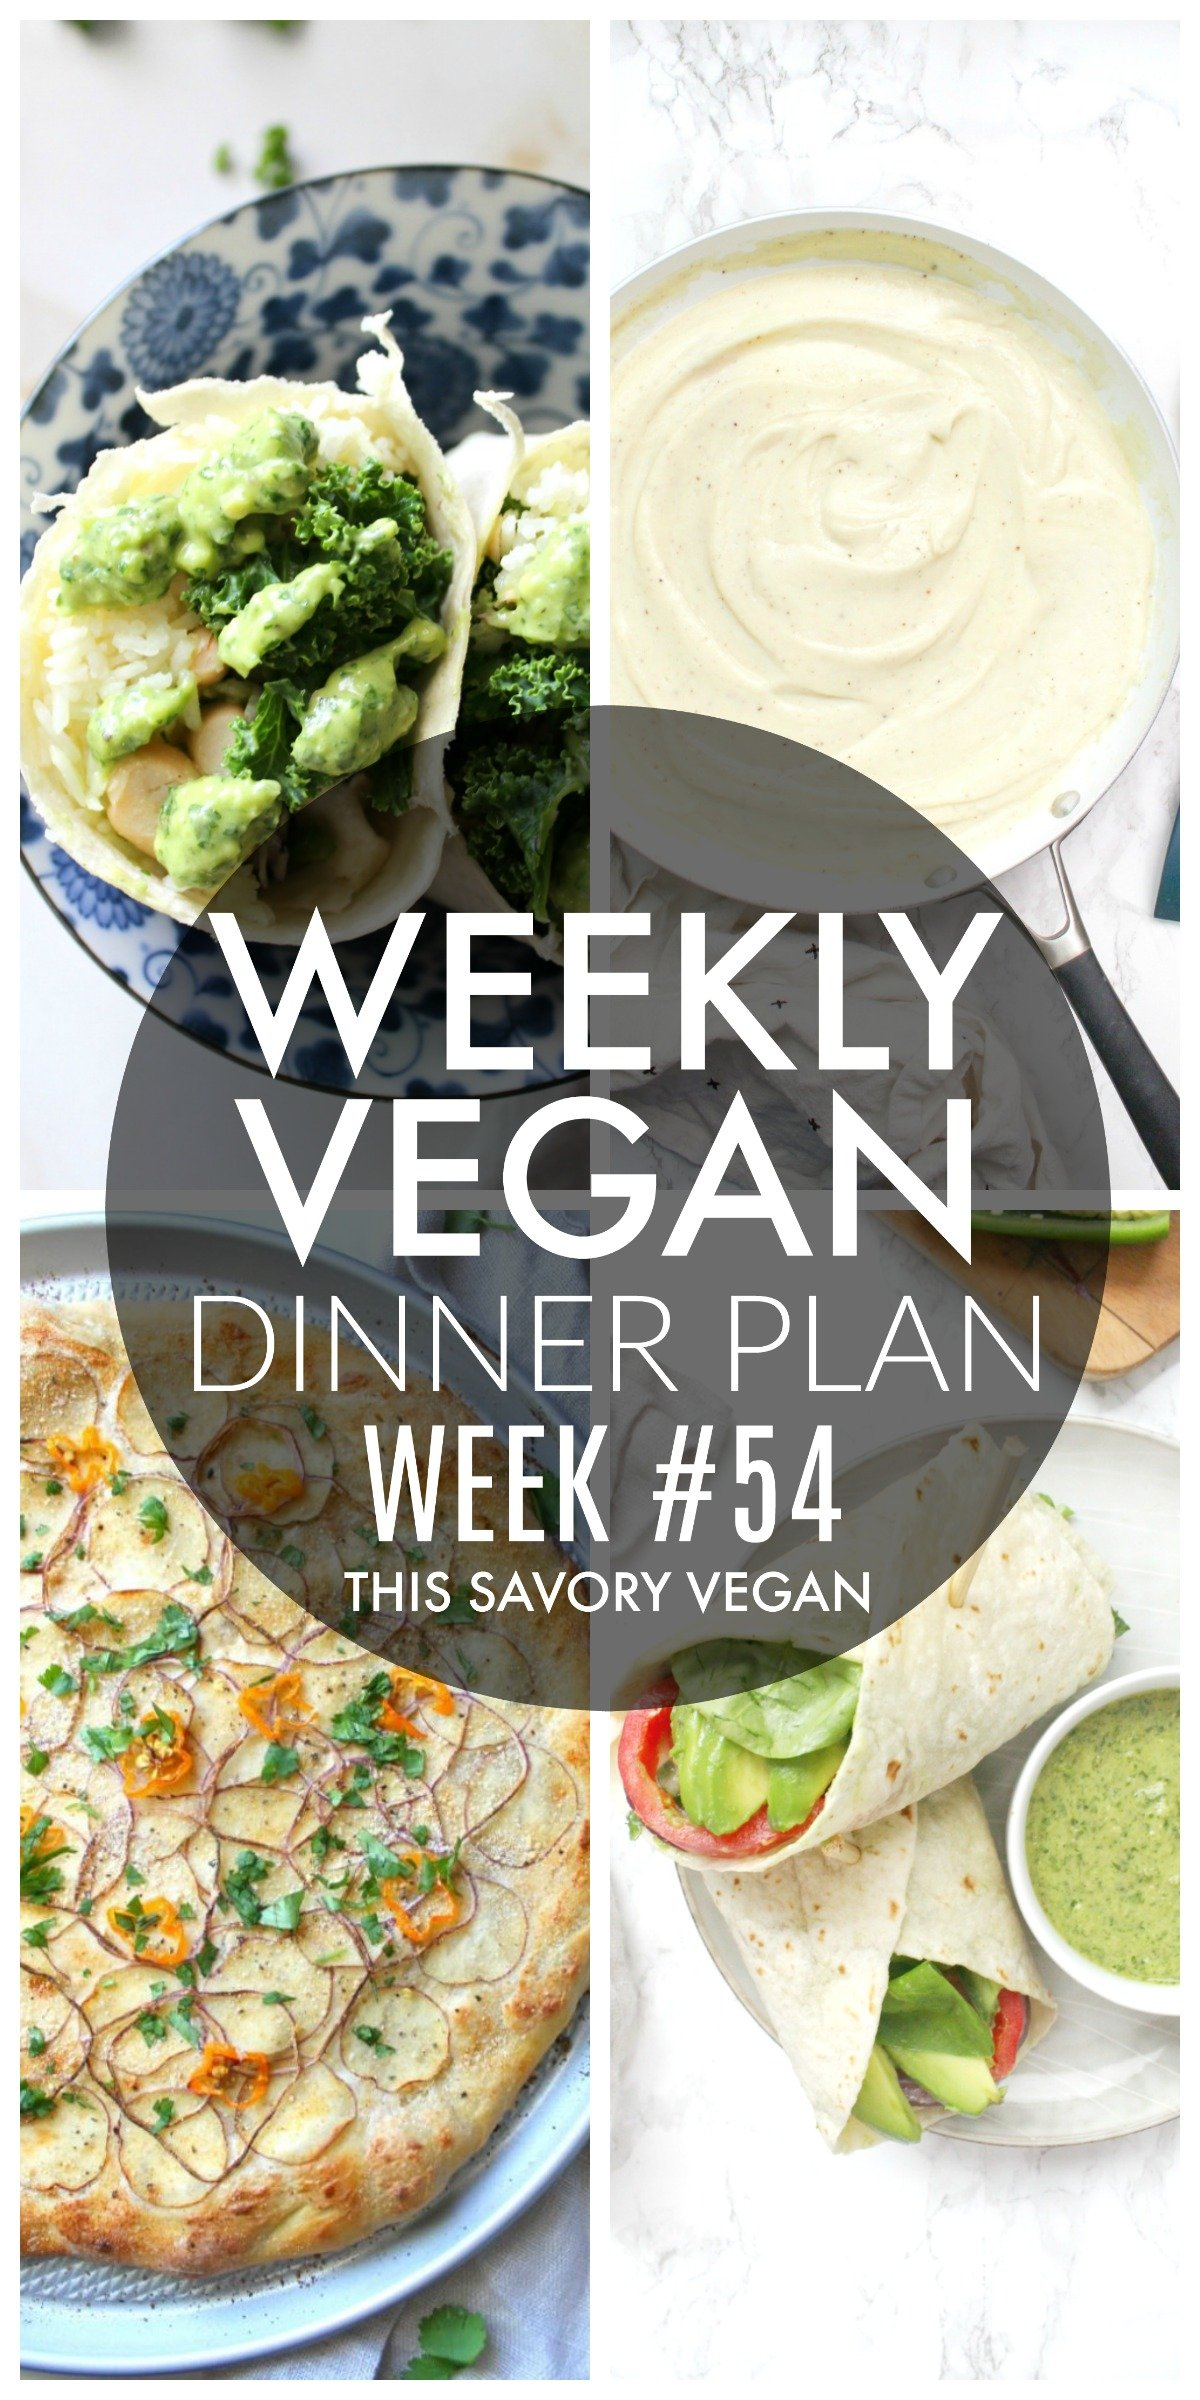 Weekly Vegan Dinner Plan #54 - five nights worth of vegan dinners to help inspire your menu. Choose one recipe to add to your rotation or make them all - shopping list included   ThisSavoryVegan.com #thissavoryvegan #mealprep #dinnerplan